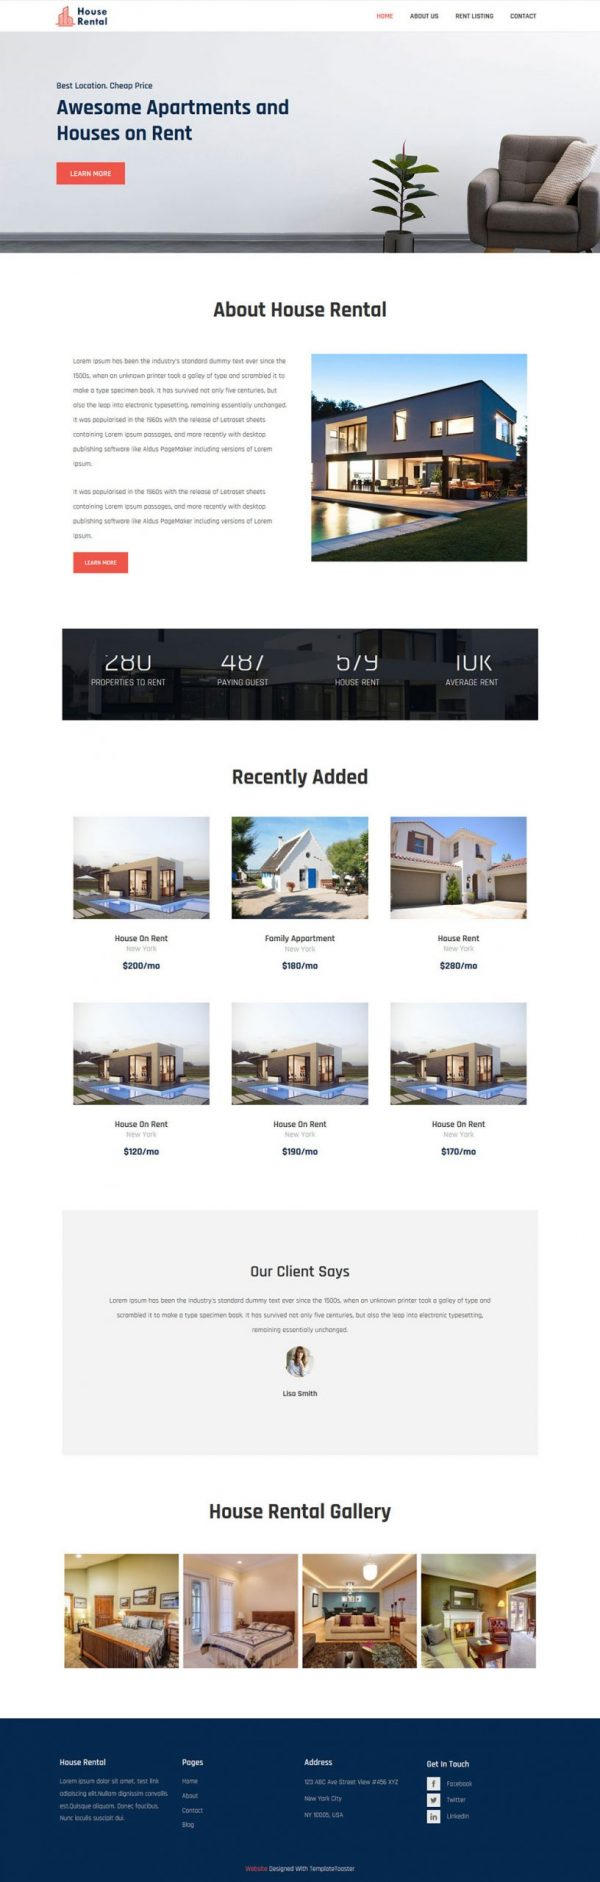 house rental apartments and house html template